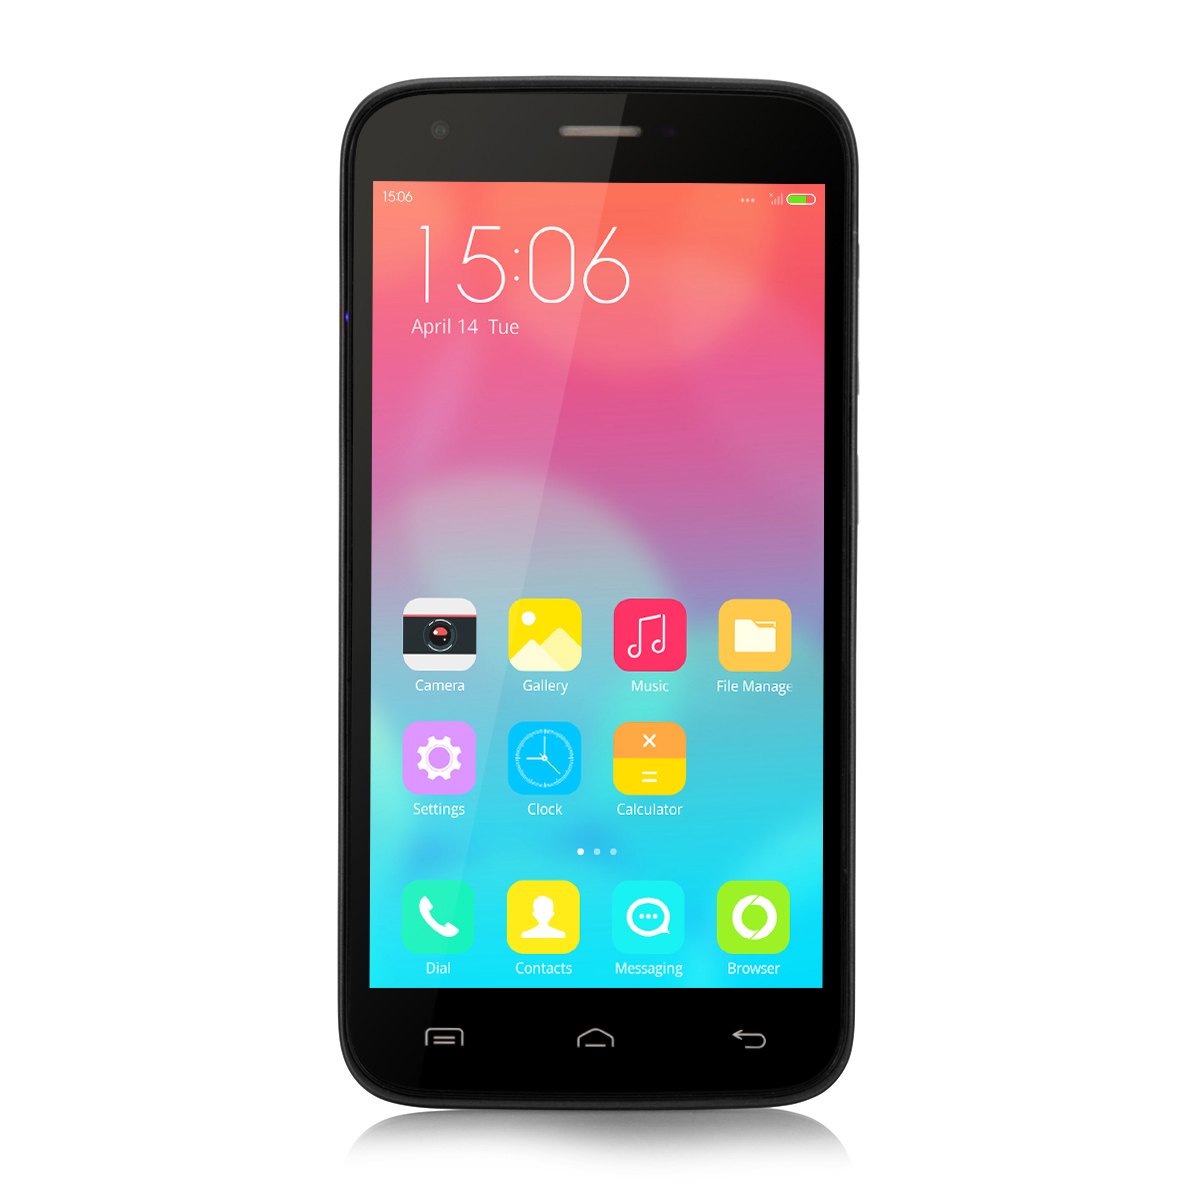 DOOGEE VALENCIA2 Y100 Smartphone Octa Core MTK6592 Android 4.4 5.0 Inch HD OGS OTG